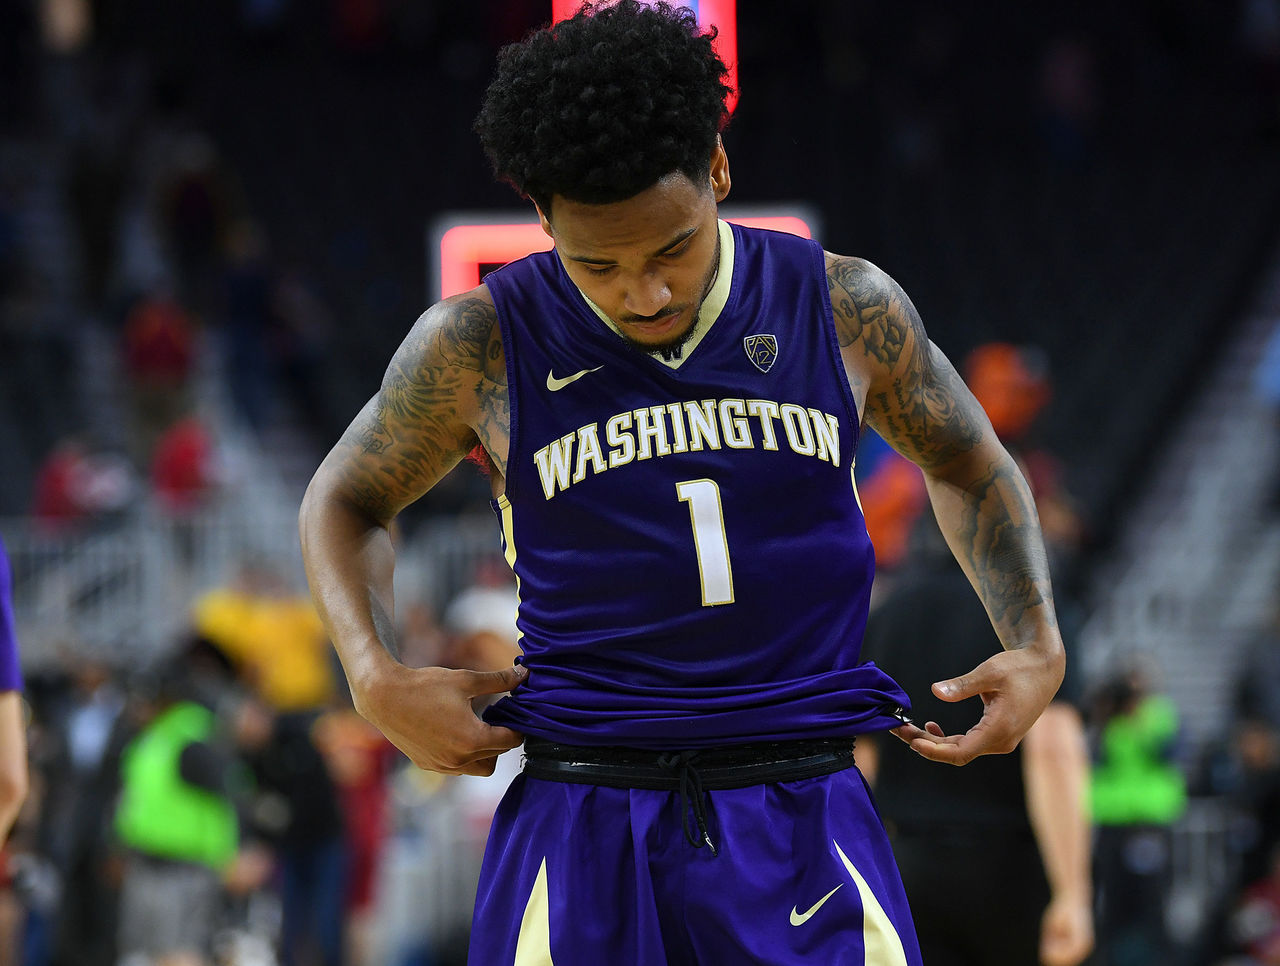 Cropped 2017 03 09t065537z 727137138 nocid rtrmadp 3 ncaa basketball pac 12 conference tournament usc vs washington